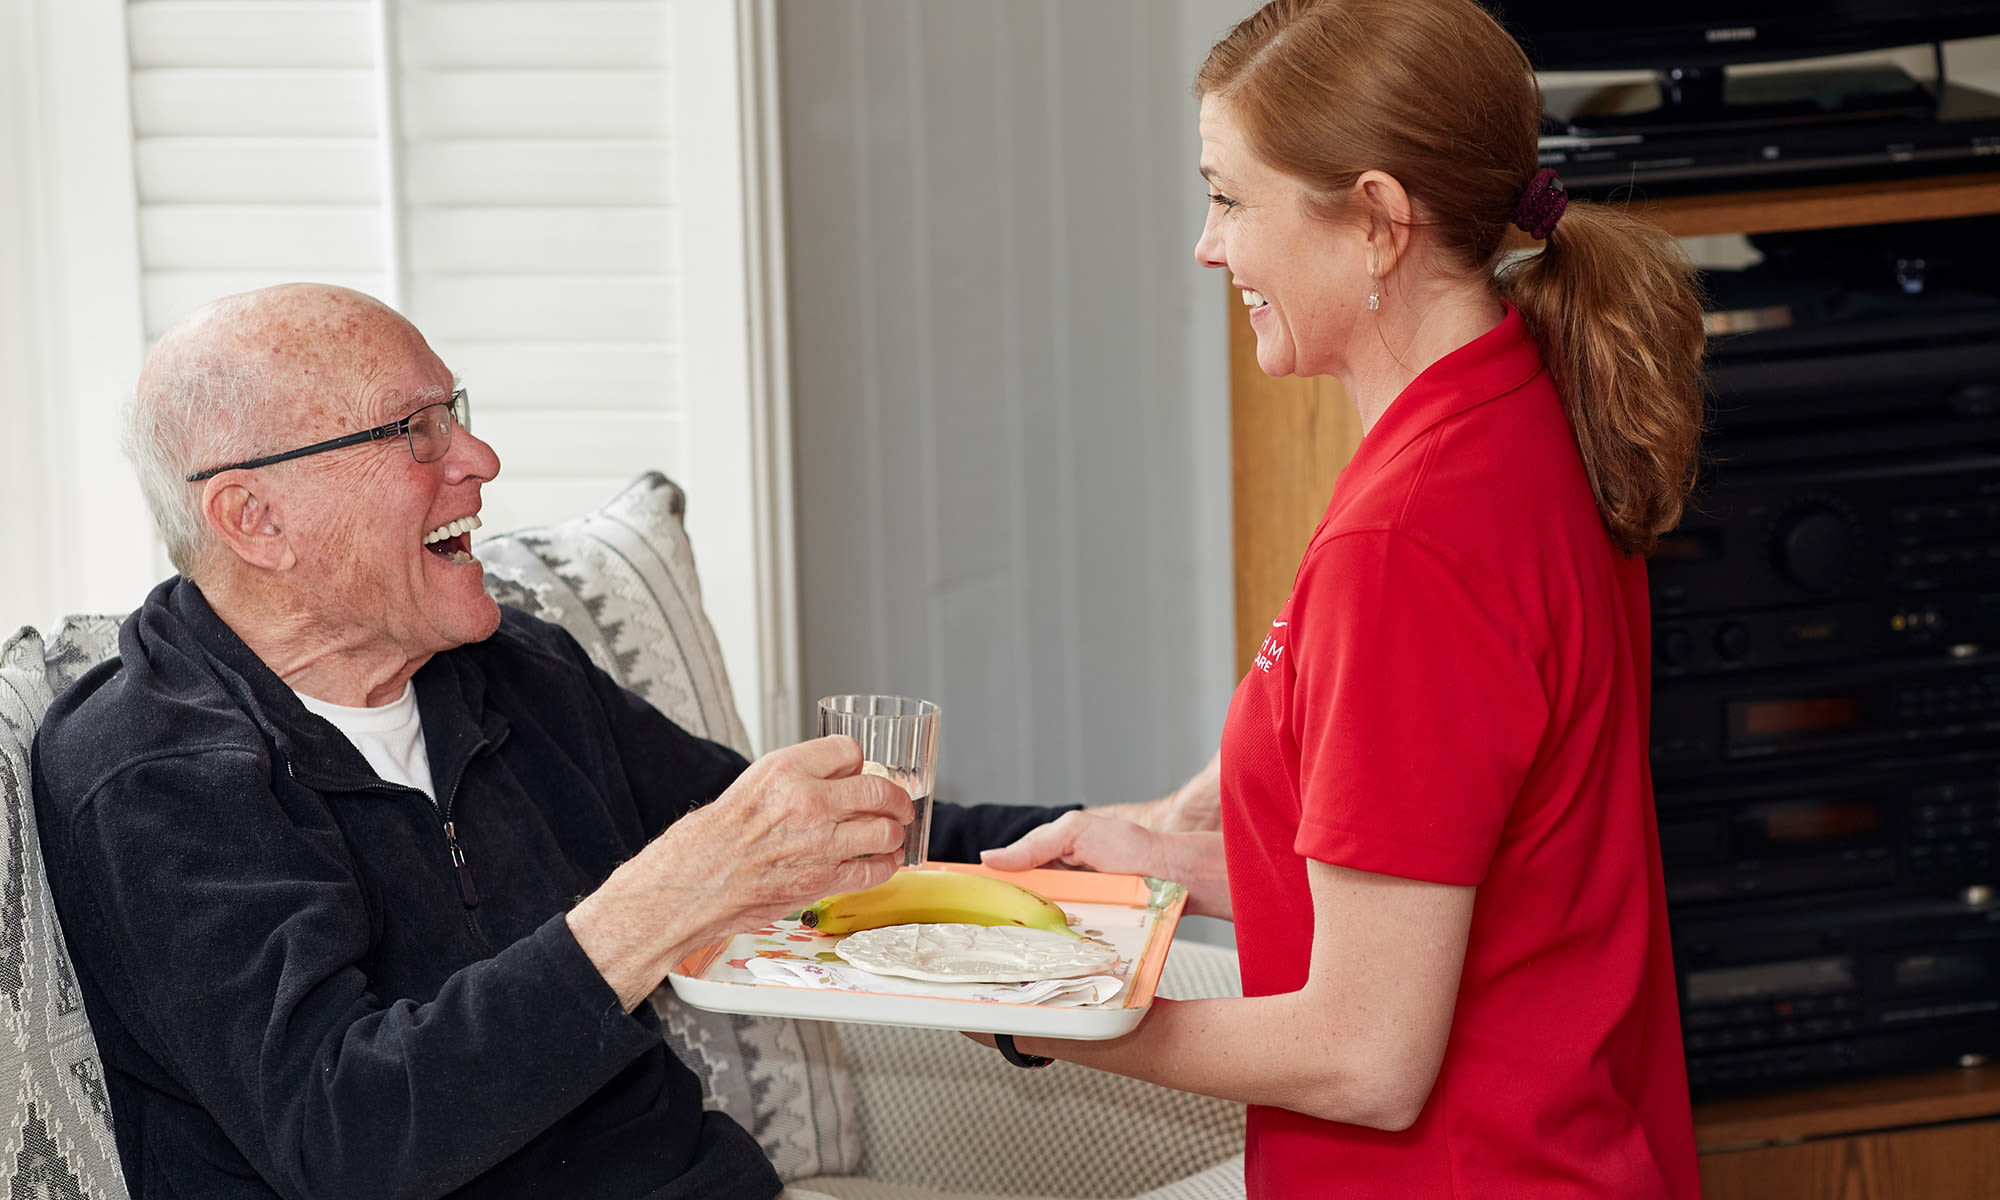 Rhythms Home Care services include dining assistance